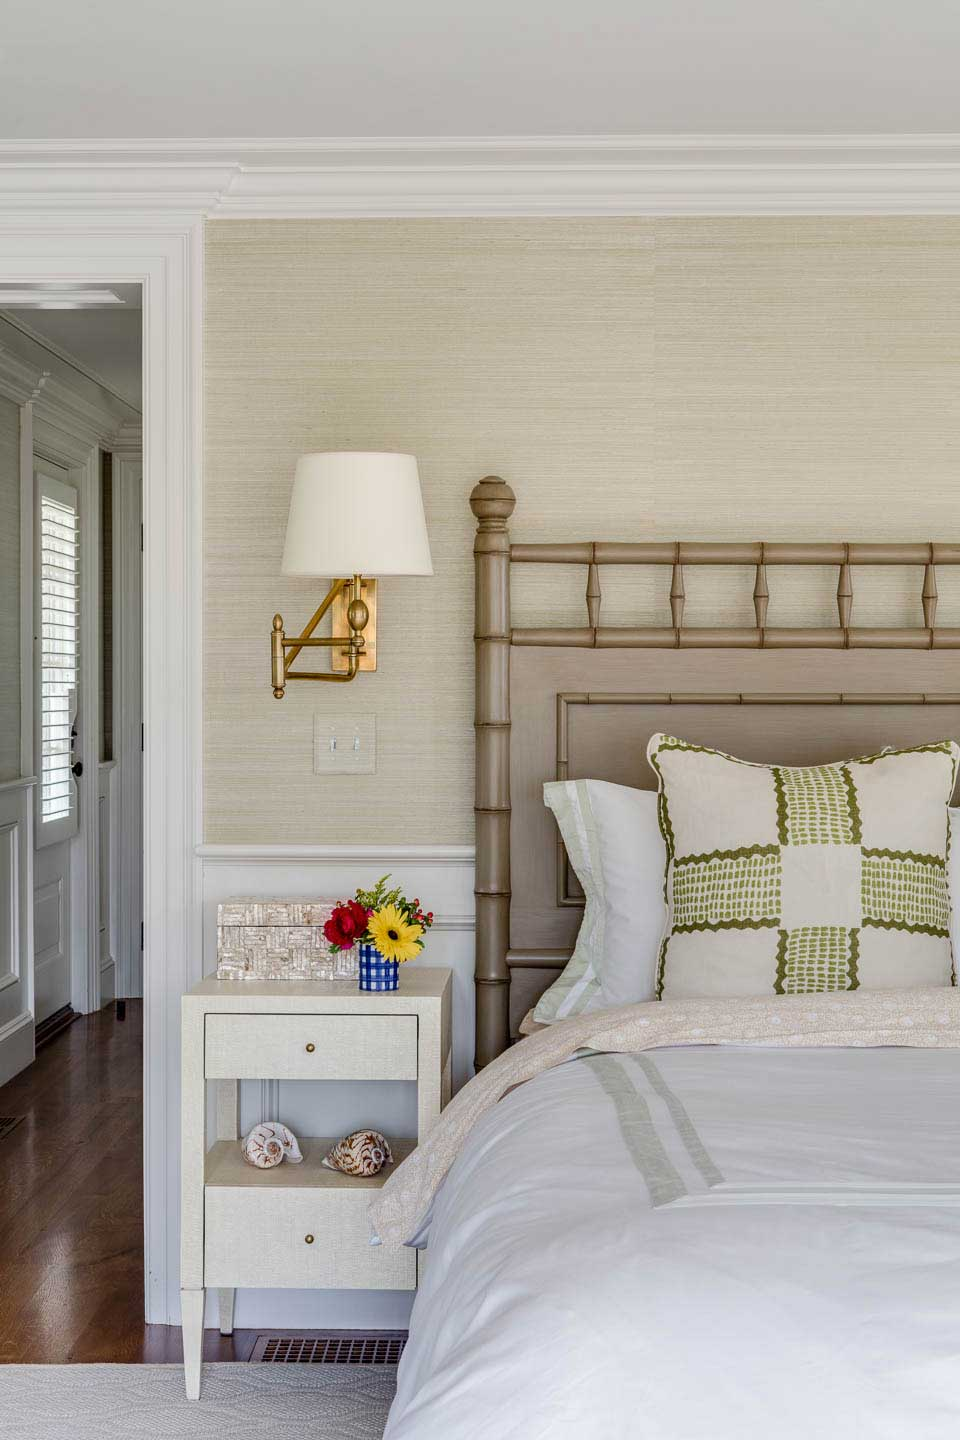 cape house, bedroom, guest room, night stand, bed, white bedding, bamboo headboard